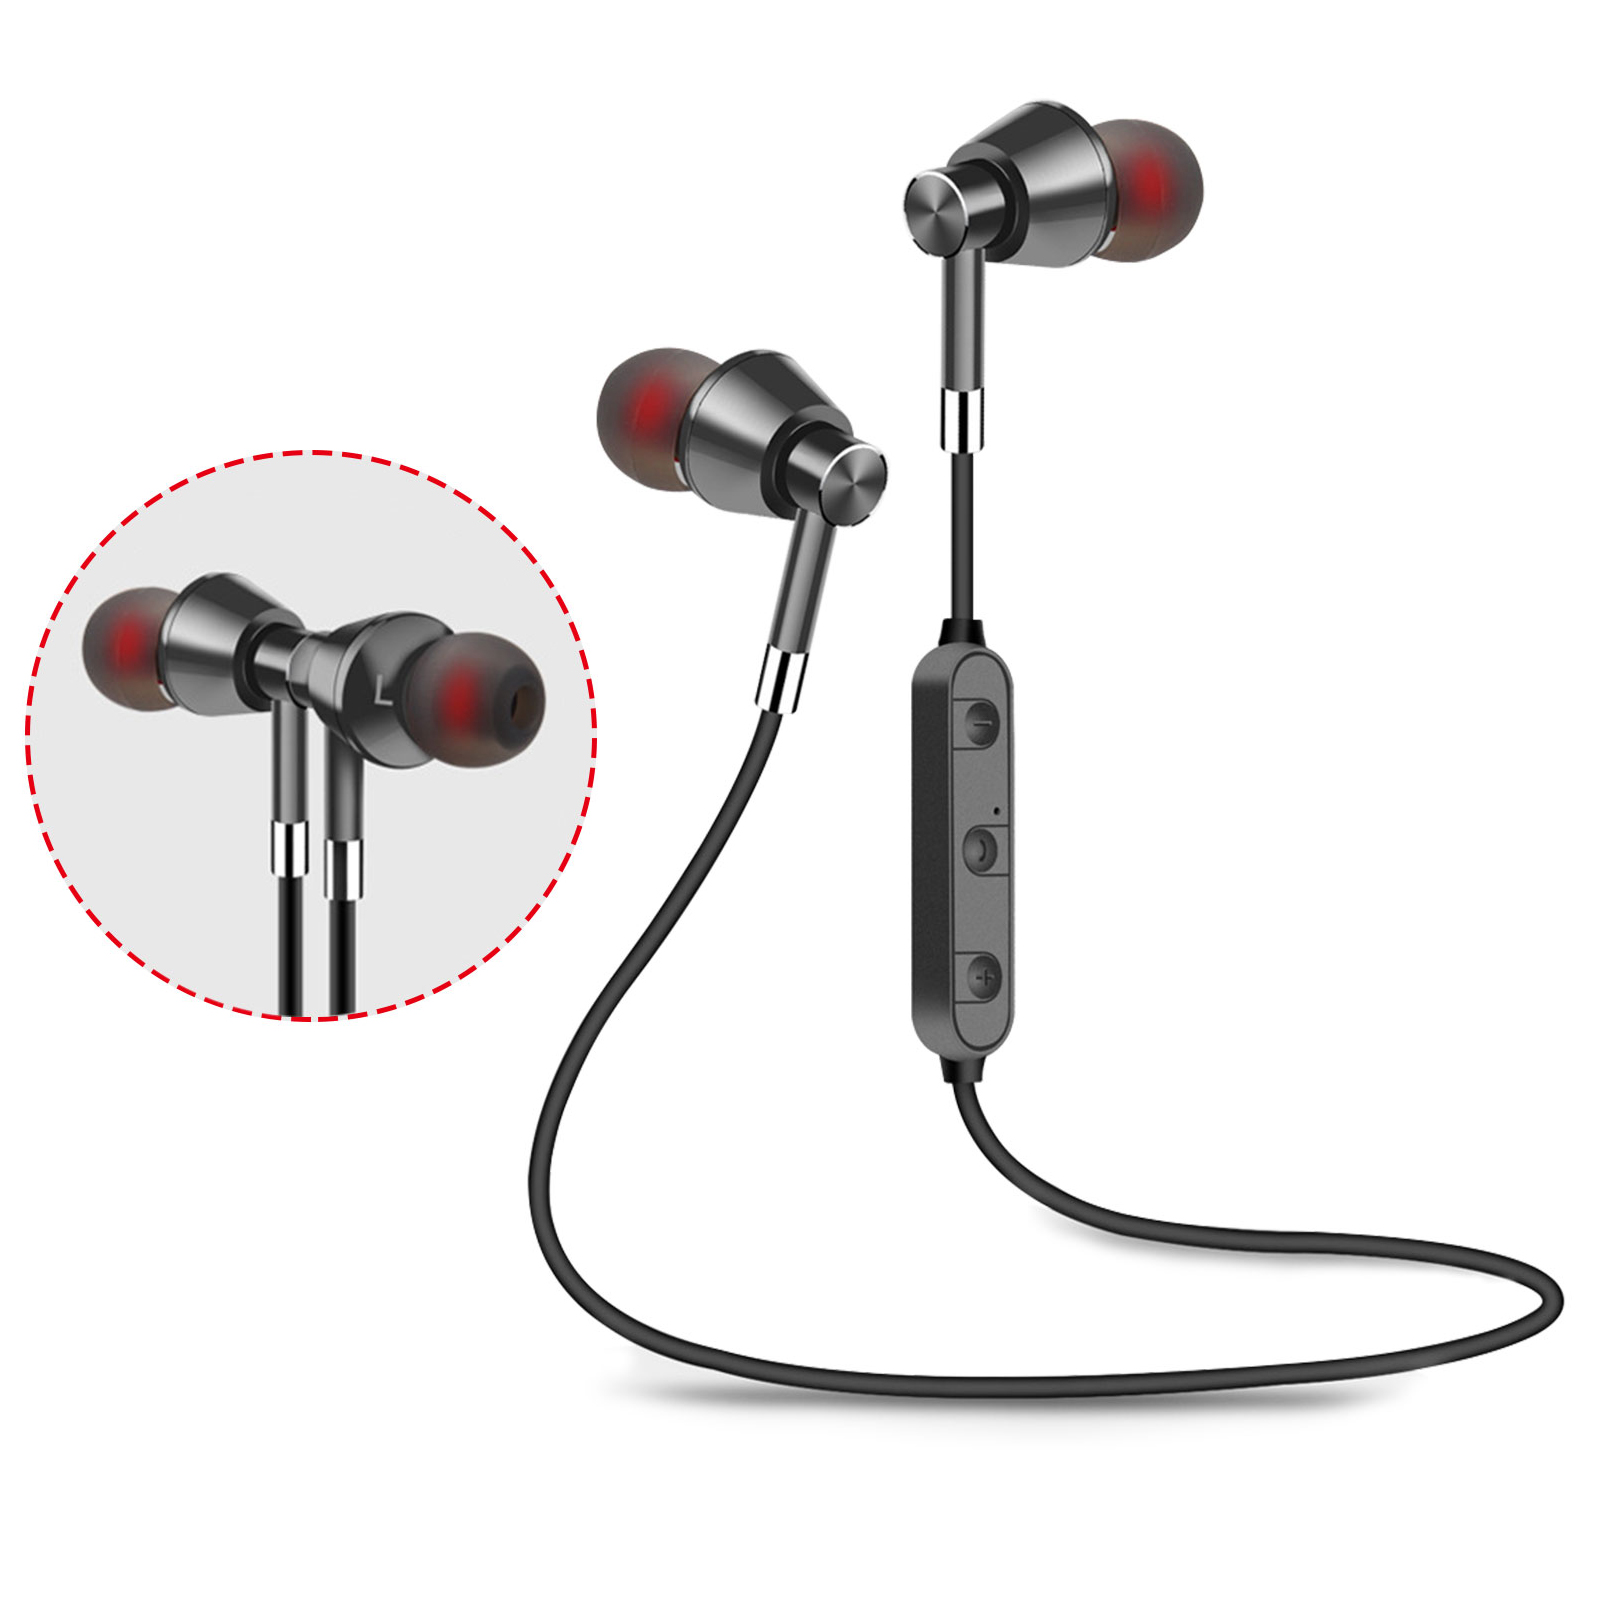 EEEKit Wireless Bluetooth Magnetic Earphones, Sweatproof Sport Earbuds with Data Cable, Waterproof Lightweight Gym Headset with Built-in Mic